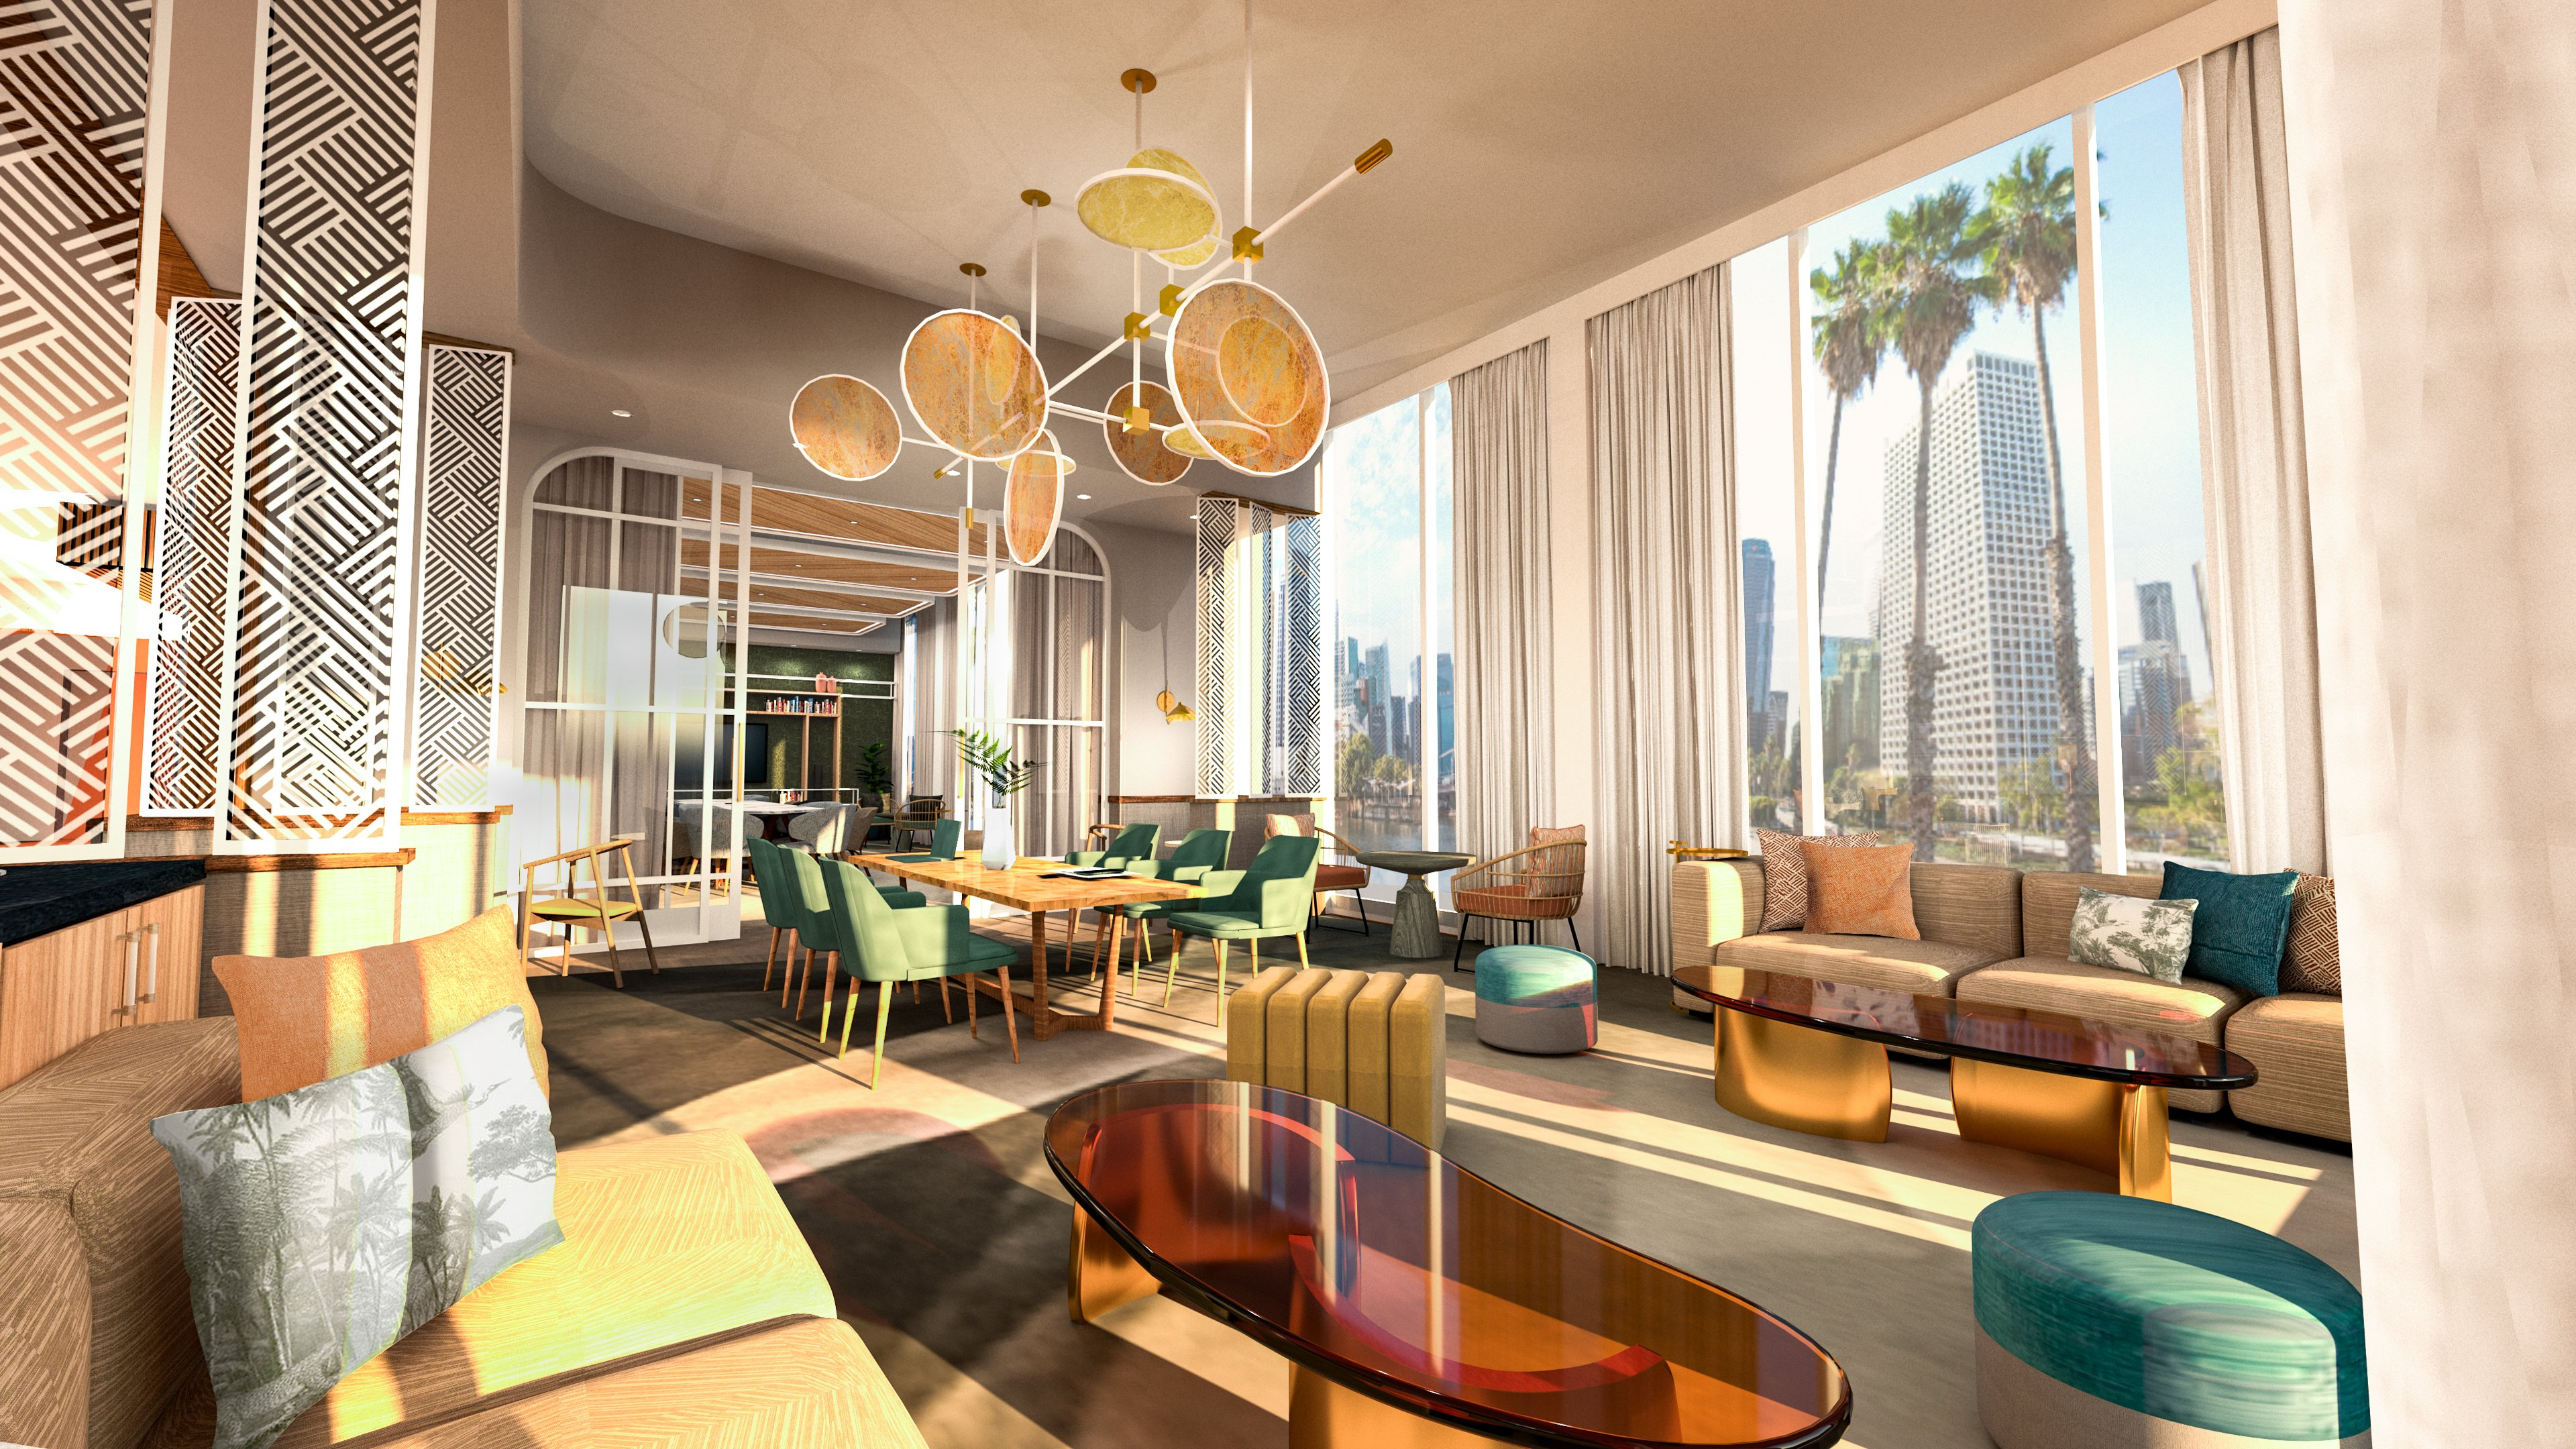 The West Coast design scheme for Tempo by Hilton's informal lounge.